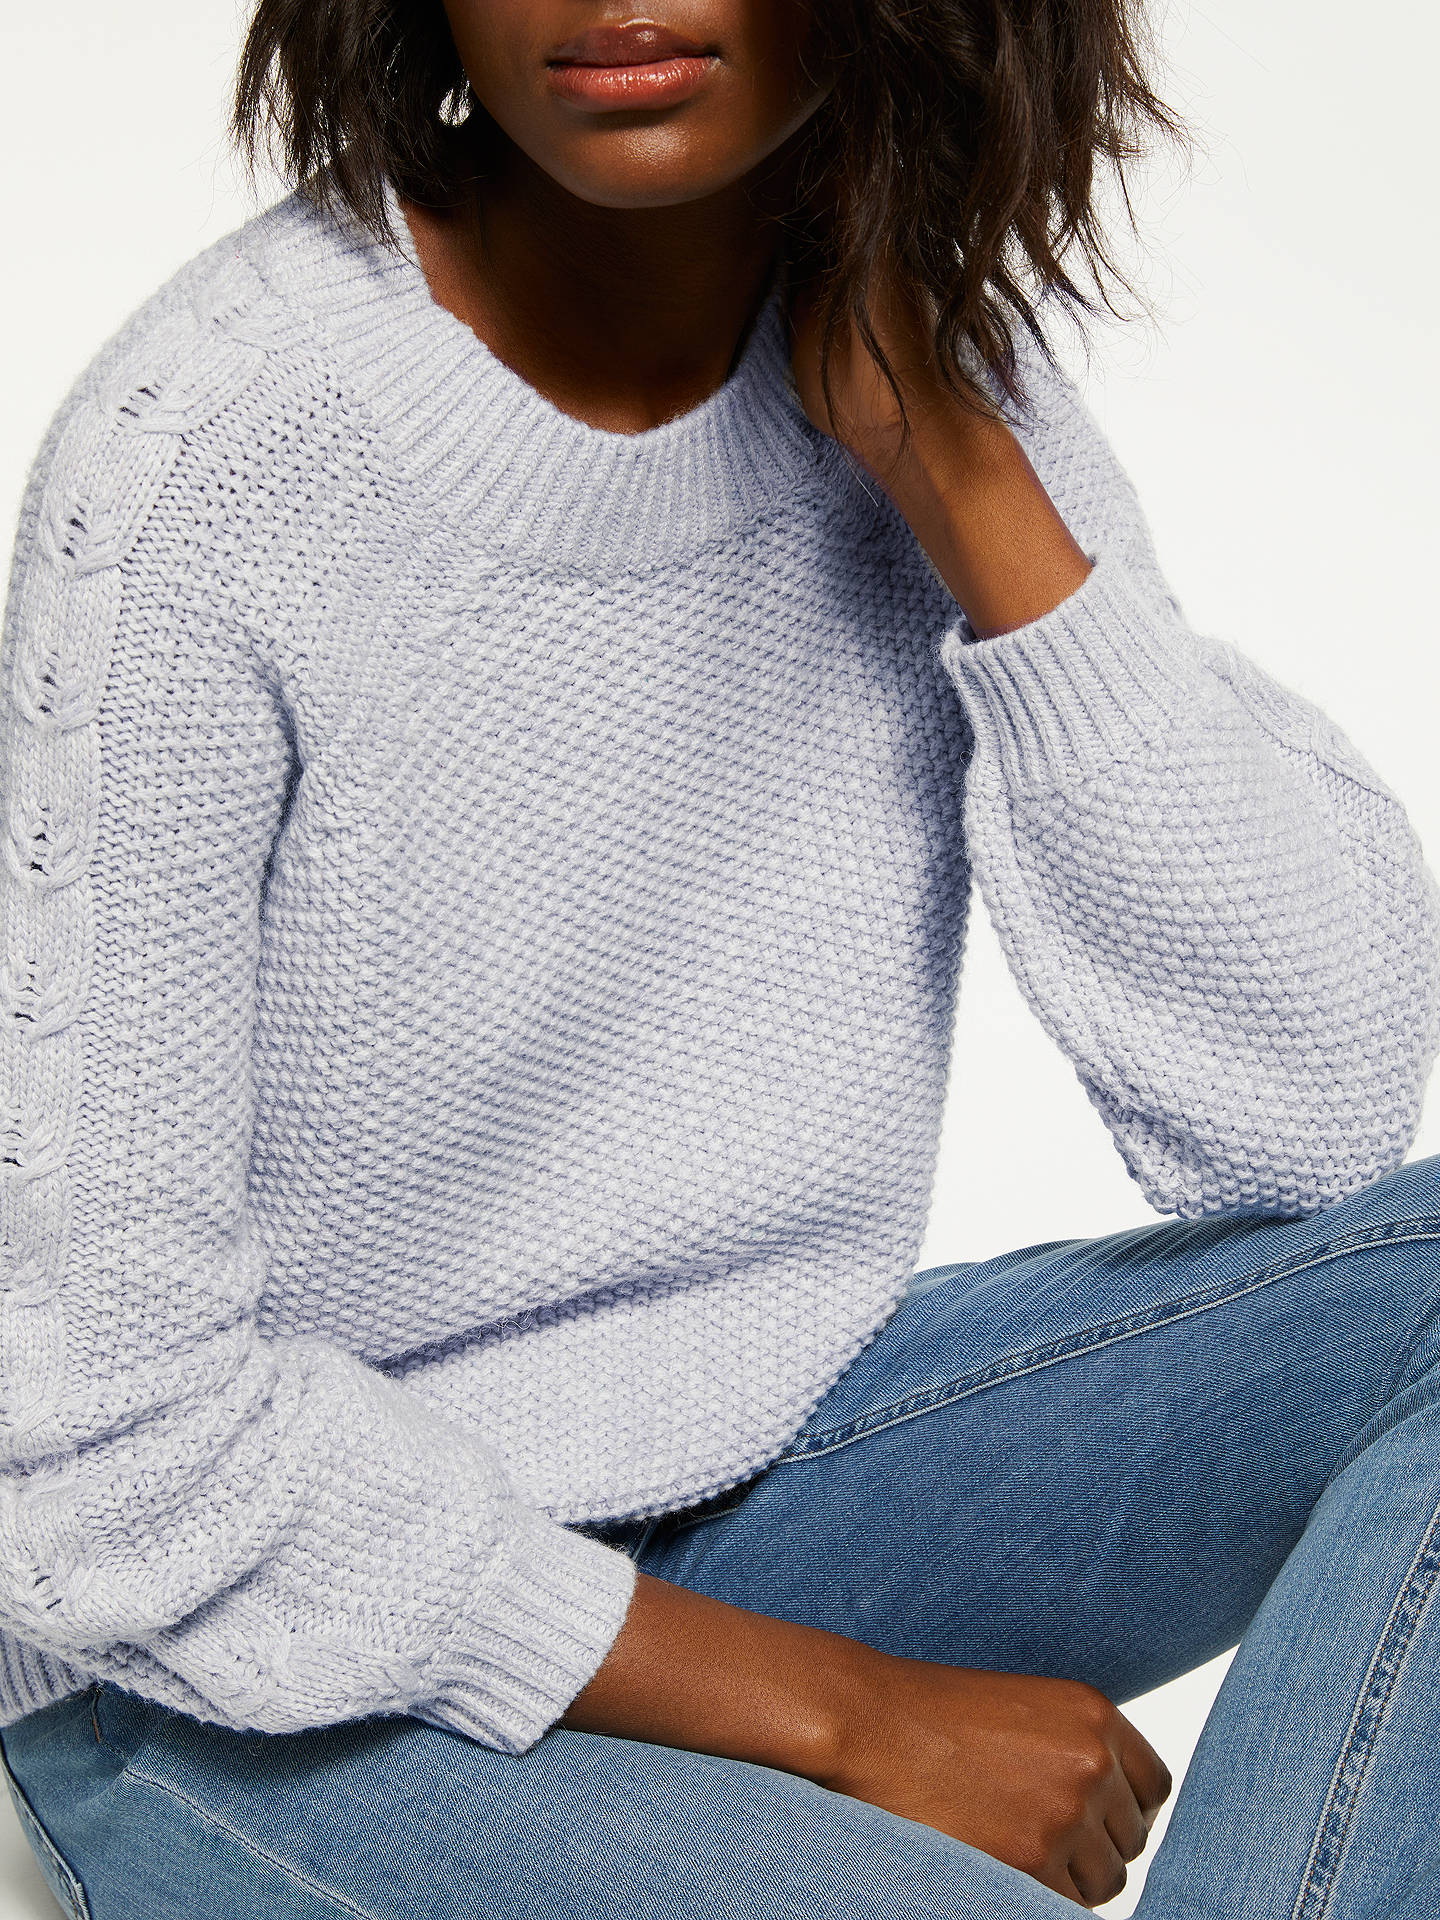 BuyBoden Kendal Knit Jumper, Silver, M Online at johnlewis.com